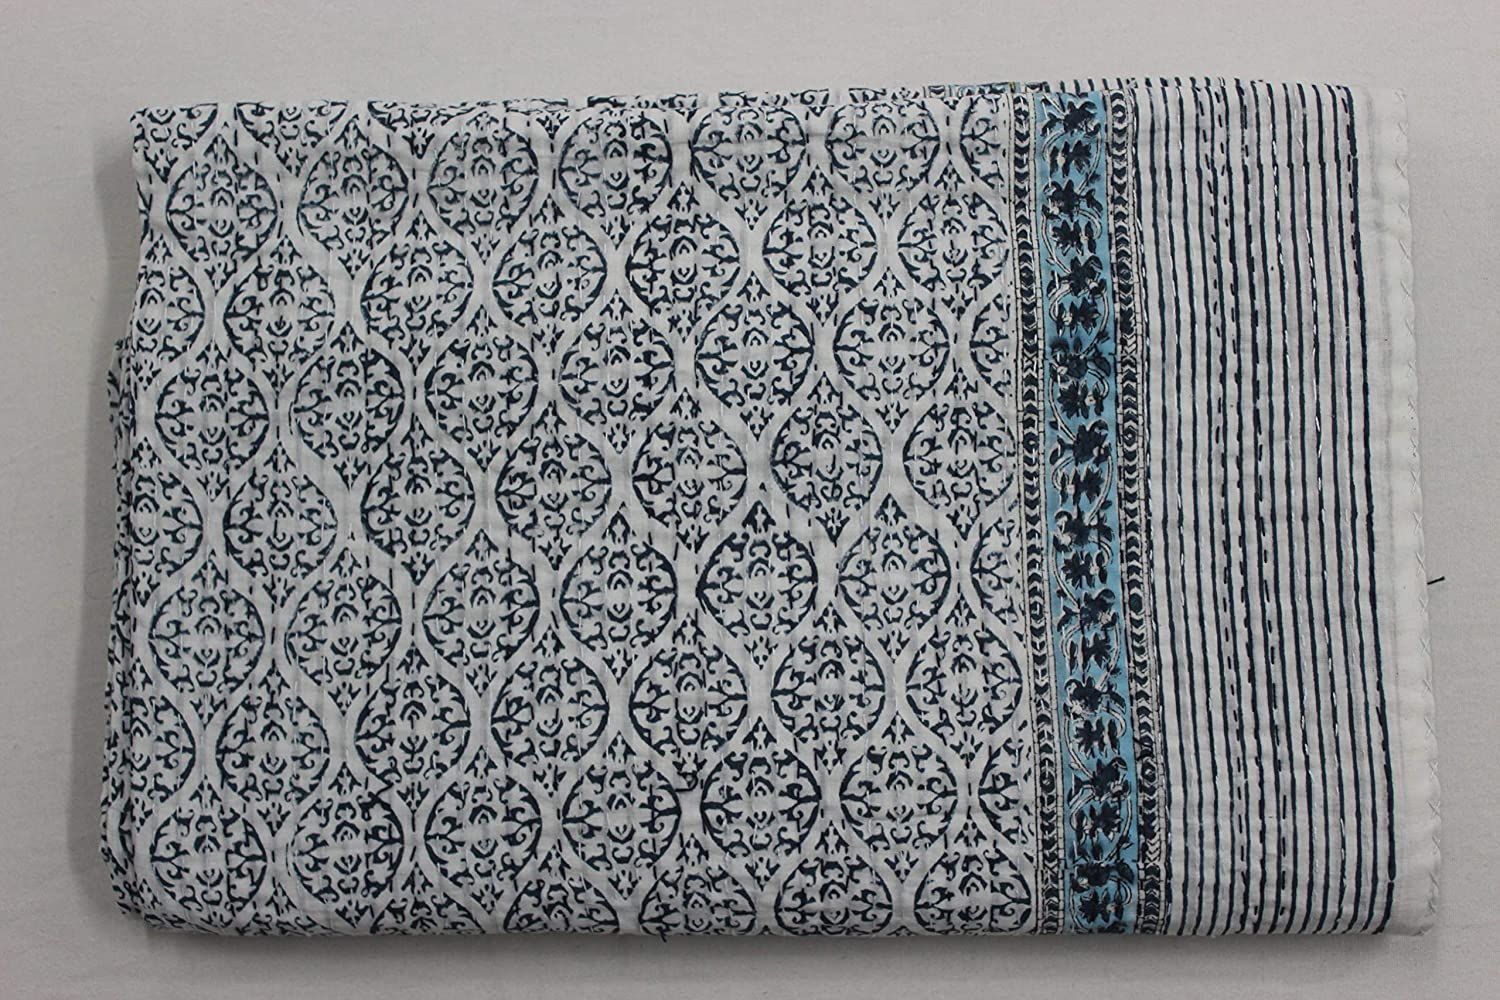 Vintage Kantha quilts Hand Stitched Quilt Indian Cotton Bohemian Boho Block Printed,Coverlet